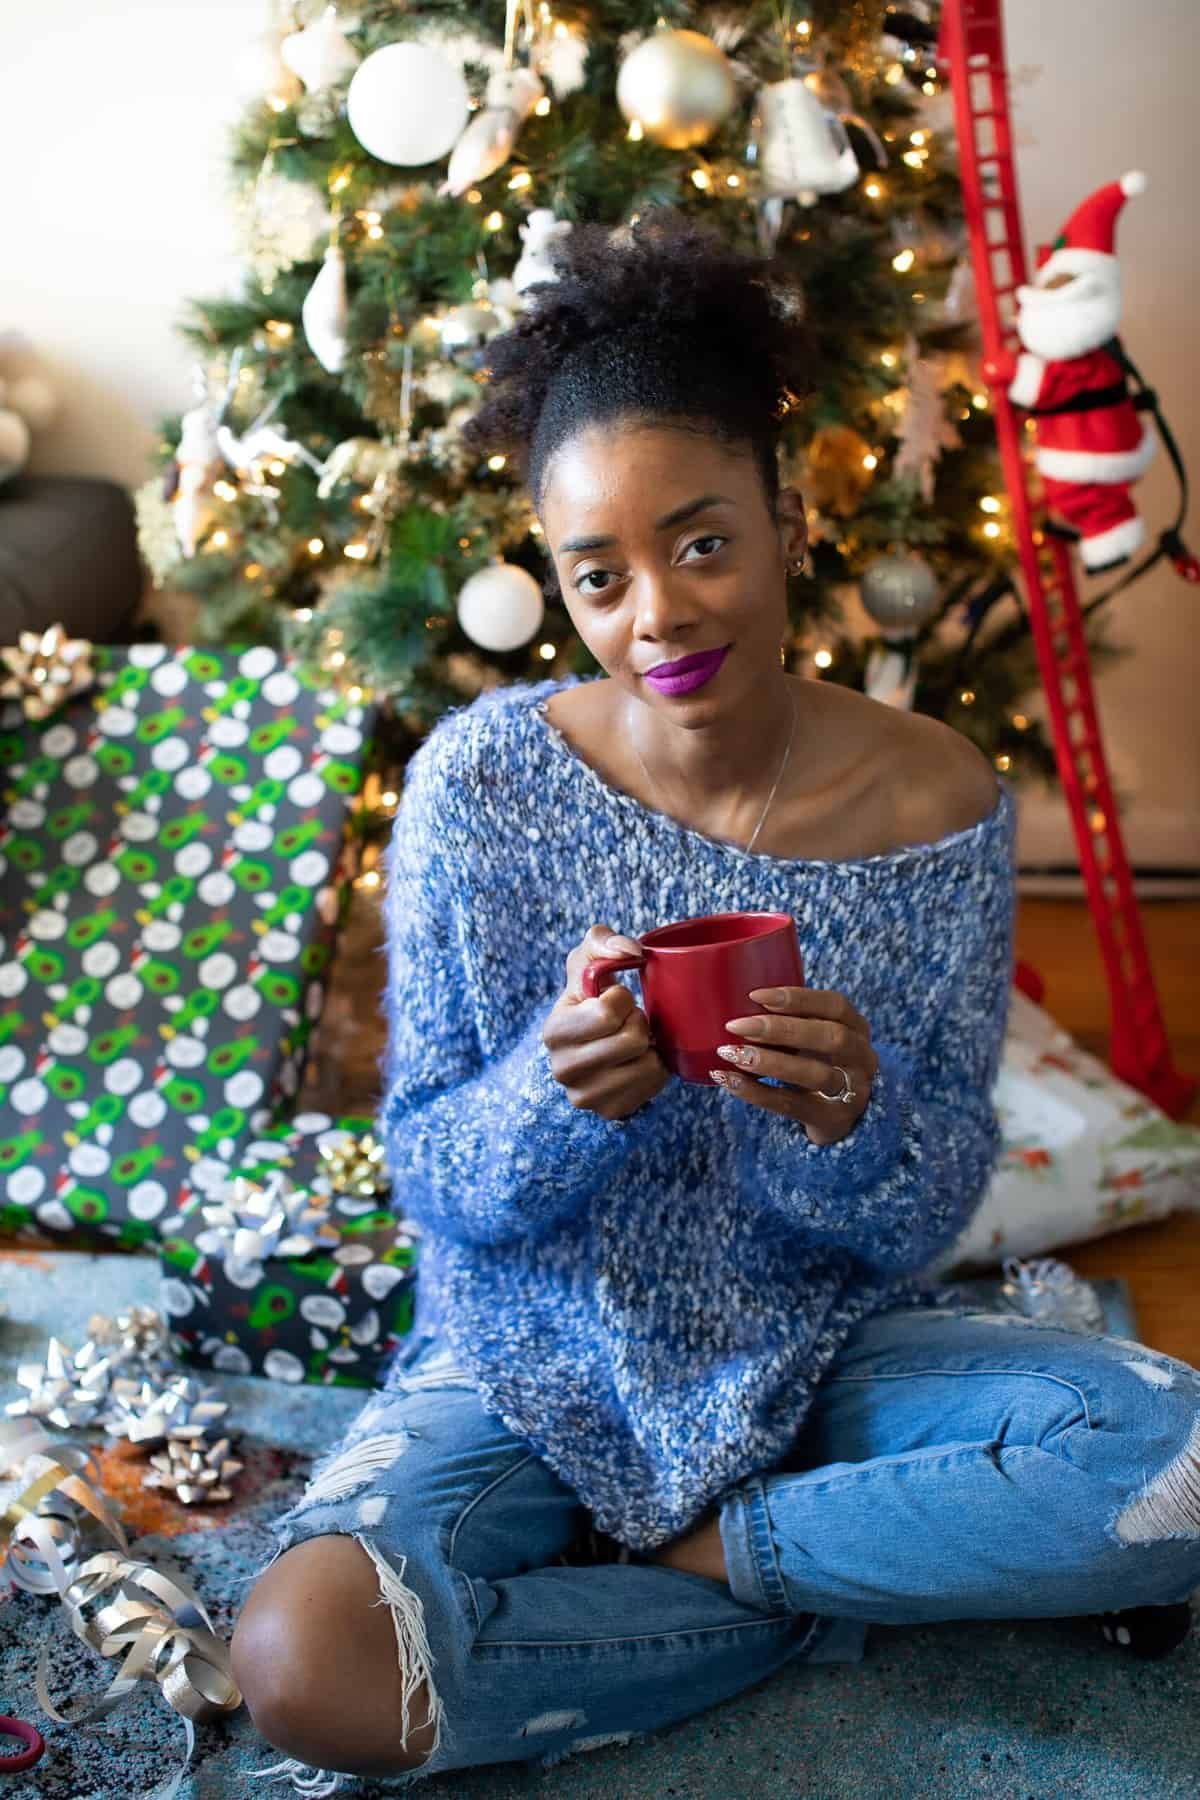 40+ Lifestyle Gift Ideas 2020: Holiday Gift Guide